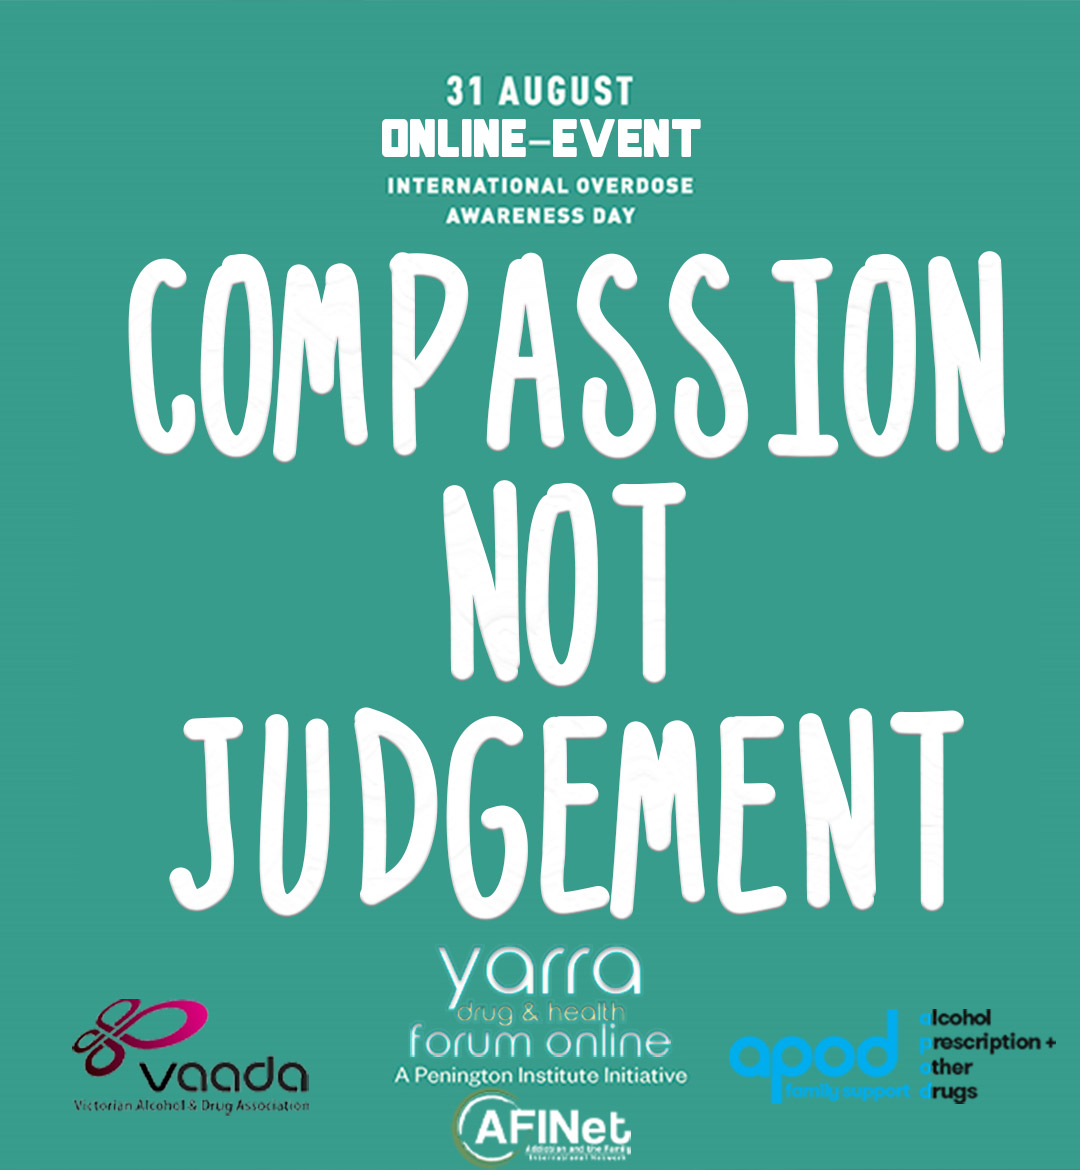 International Overdose Awareness Day Online Forum – Compassion Not Judgement